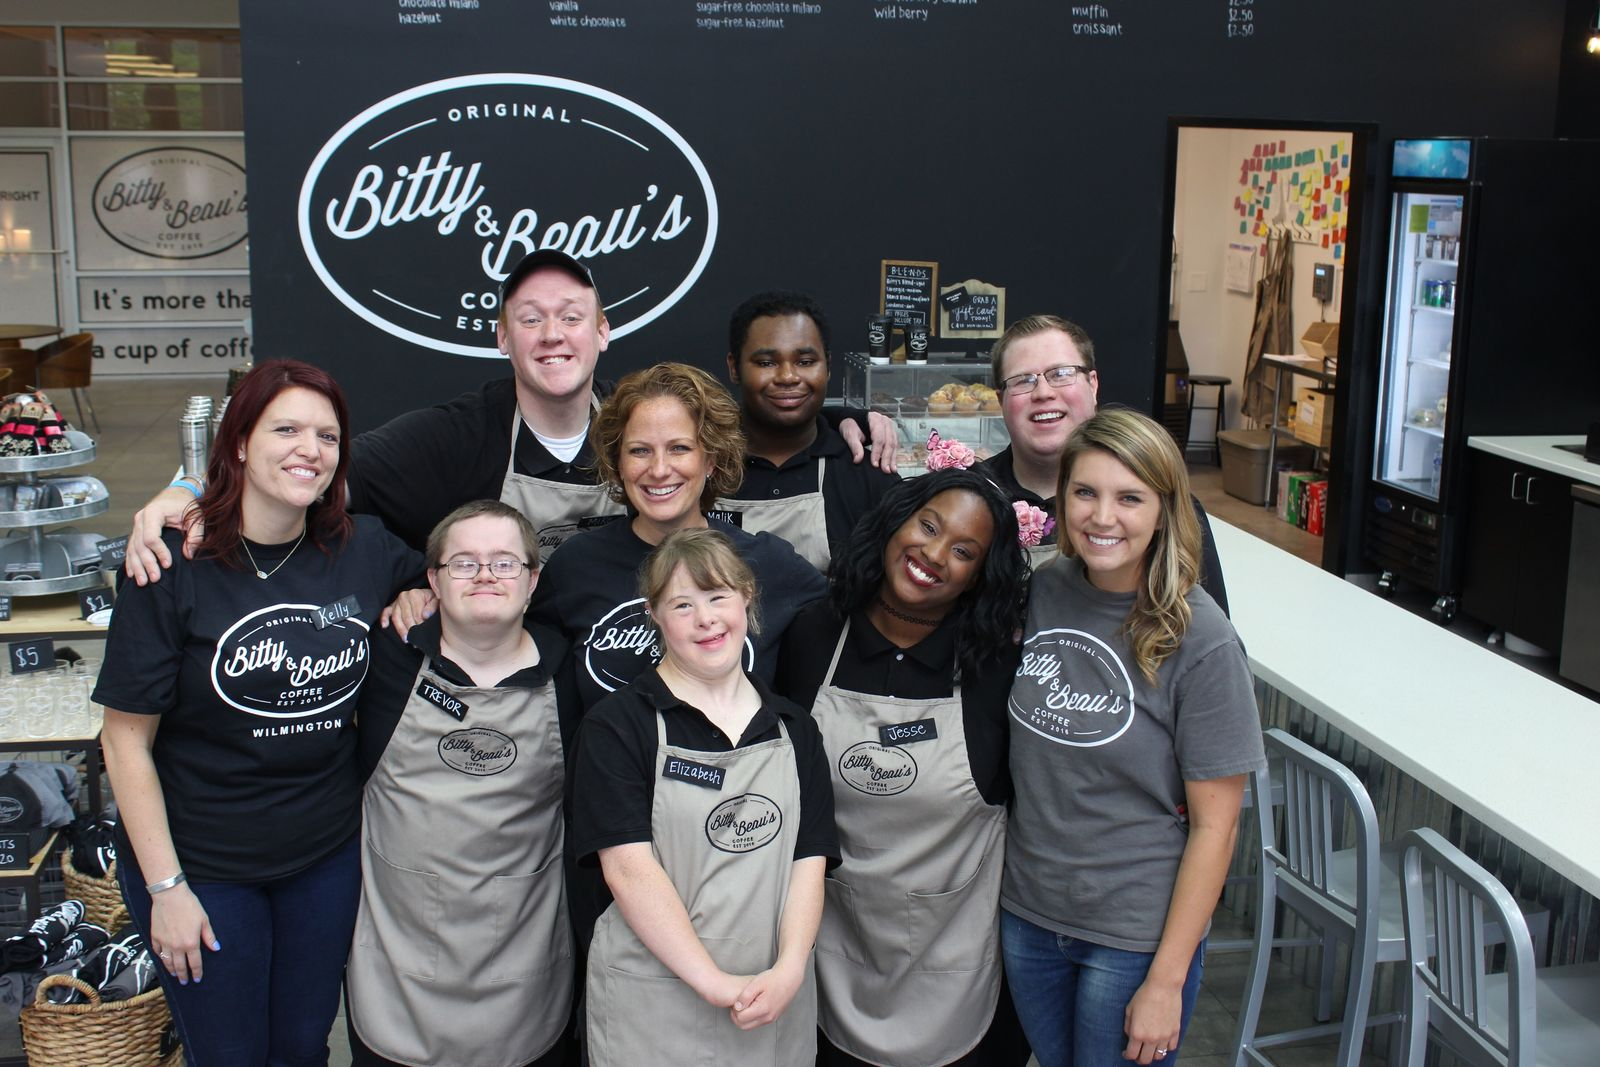 Bitty & Beau's is best known for their dedication to hiring and employing those living with intellectual and development disabilities (IDD). (Bitty & Beau's)<p></p>